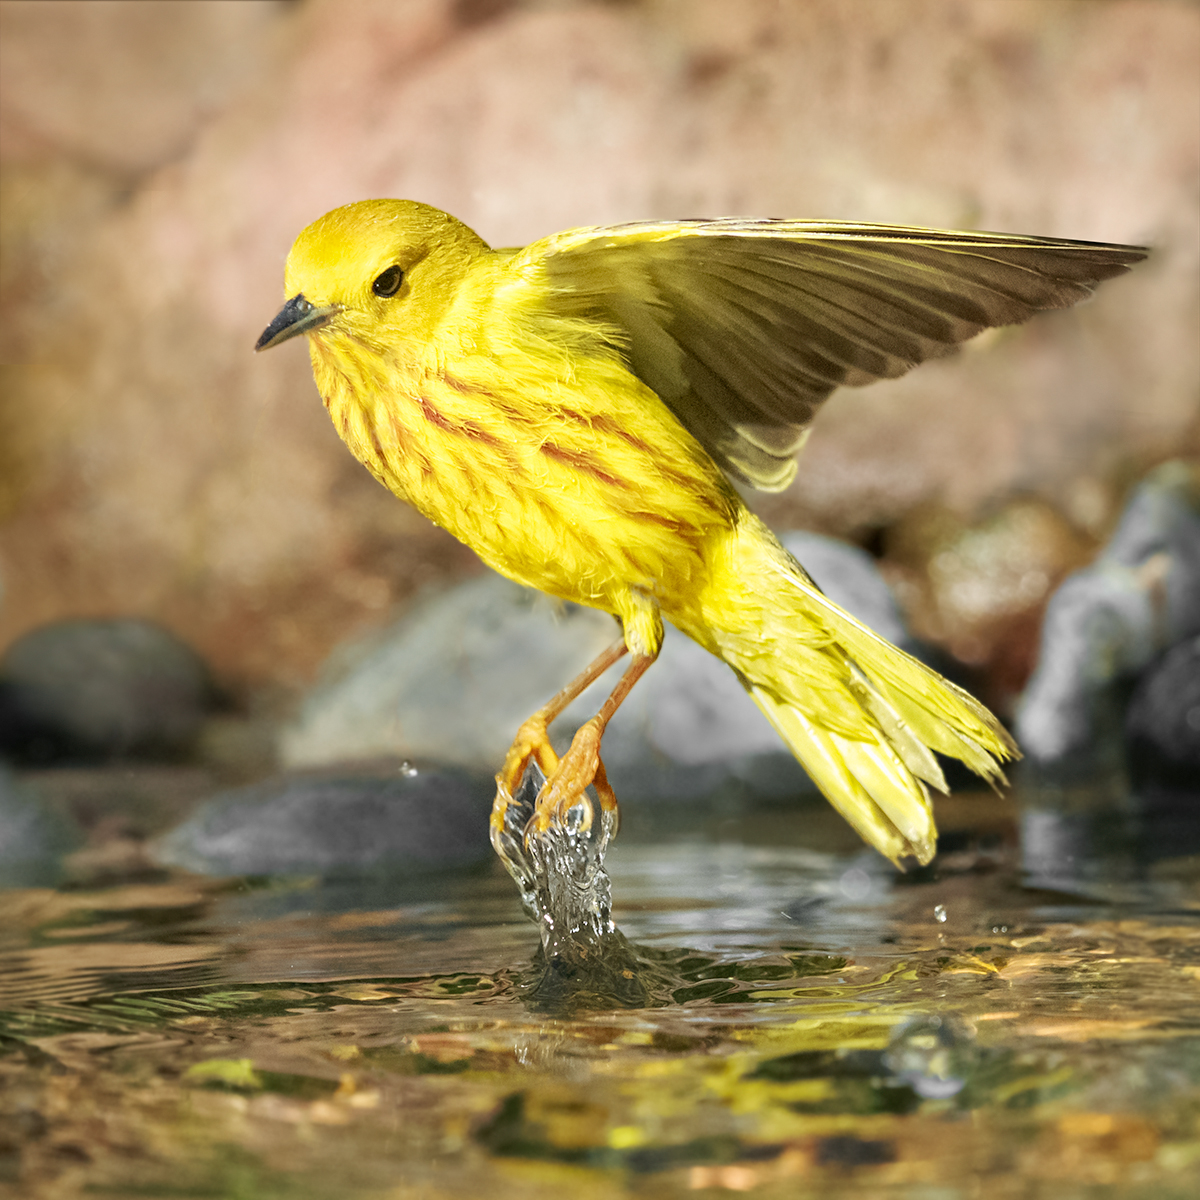 Splash of Sunshine: BirdSpotter Judges' Alternative Winner – FeederWatch  Splash of Sunshine: BirdSpotter Judges' Alternative Winner – FeederWatch Category6 JC YEWA ChristineHansen